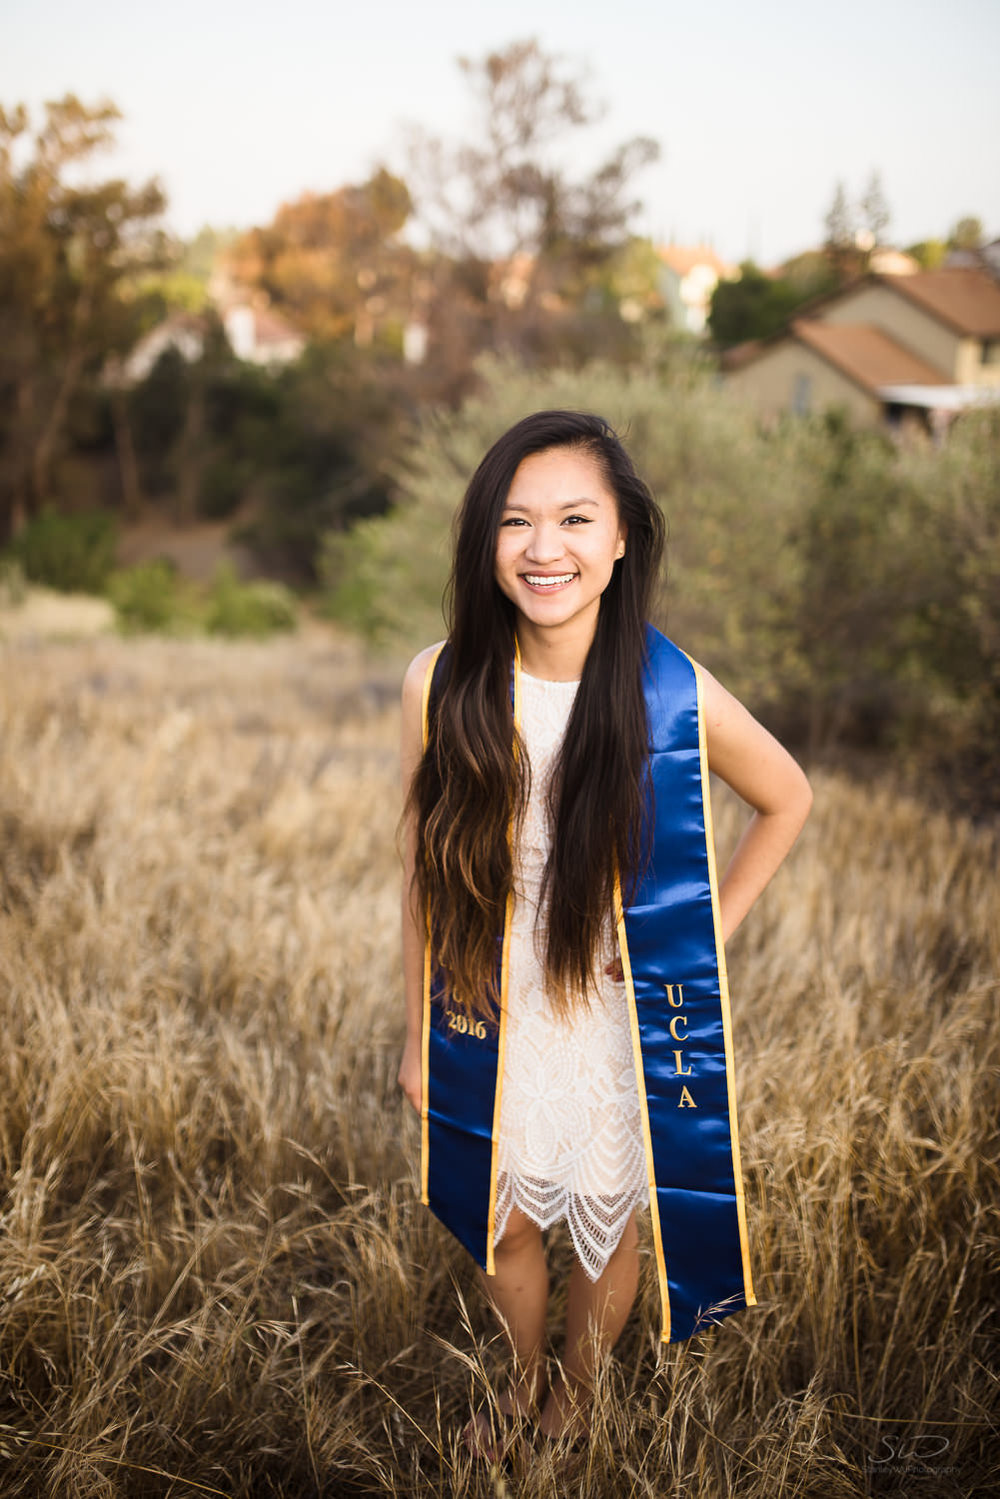 ucr_ucla_graduation_couple_granada_hills-13.jpg